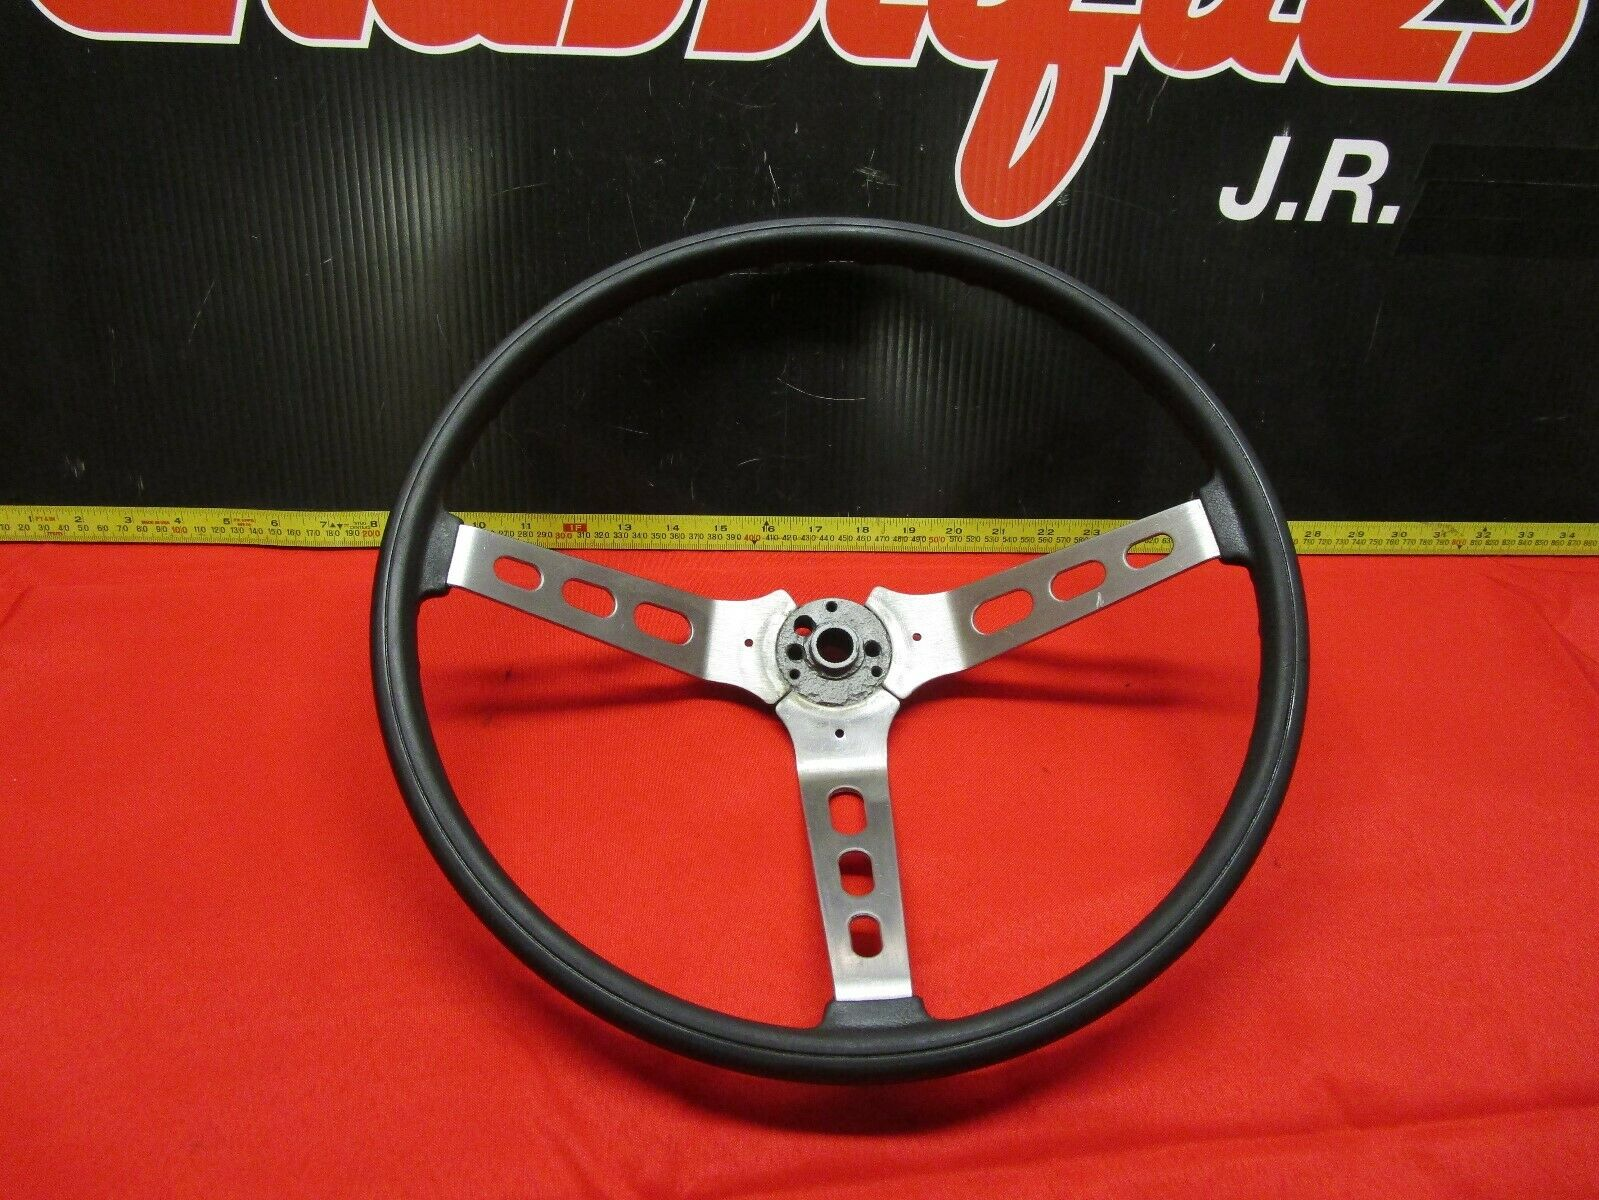 Used AMC Javelin Steering Wheels & Horns for Sale